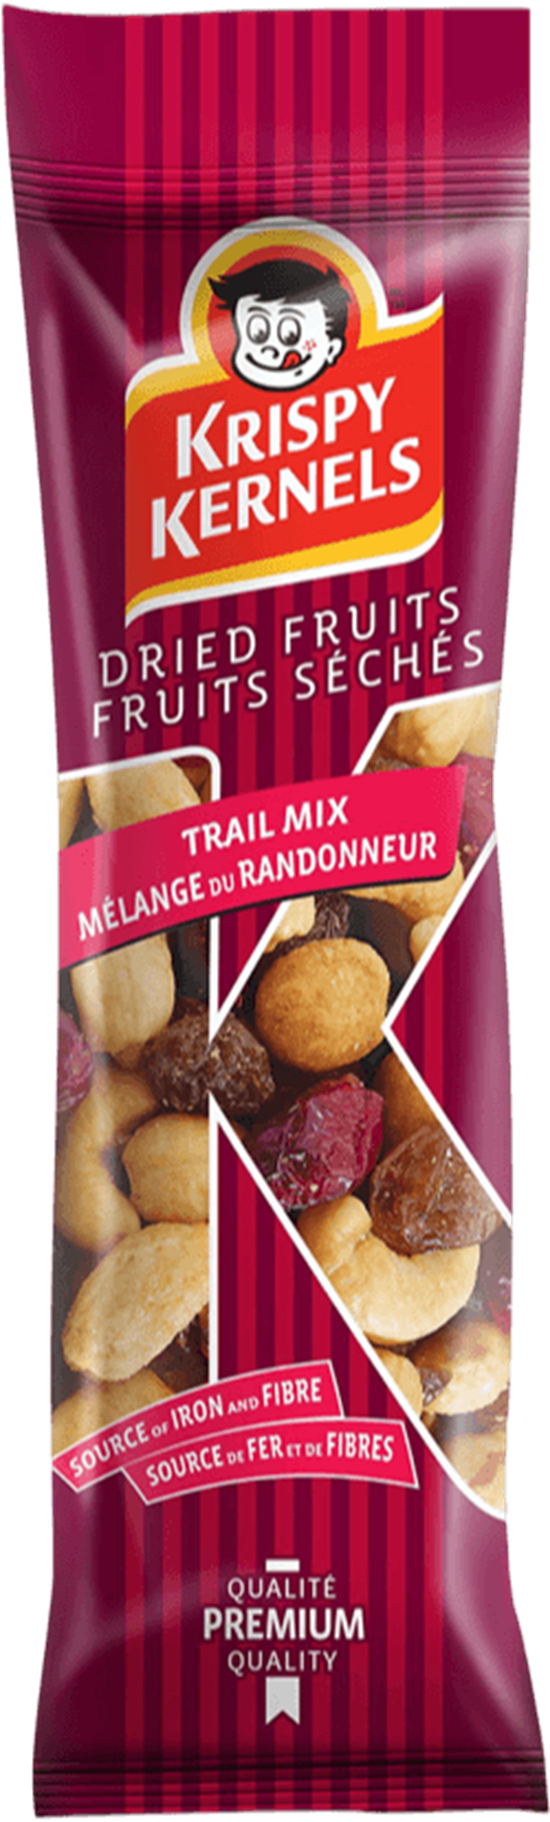 Dried fruits and nuts - Trail mix - 55g